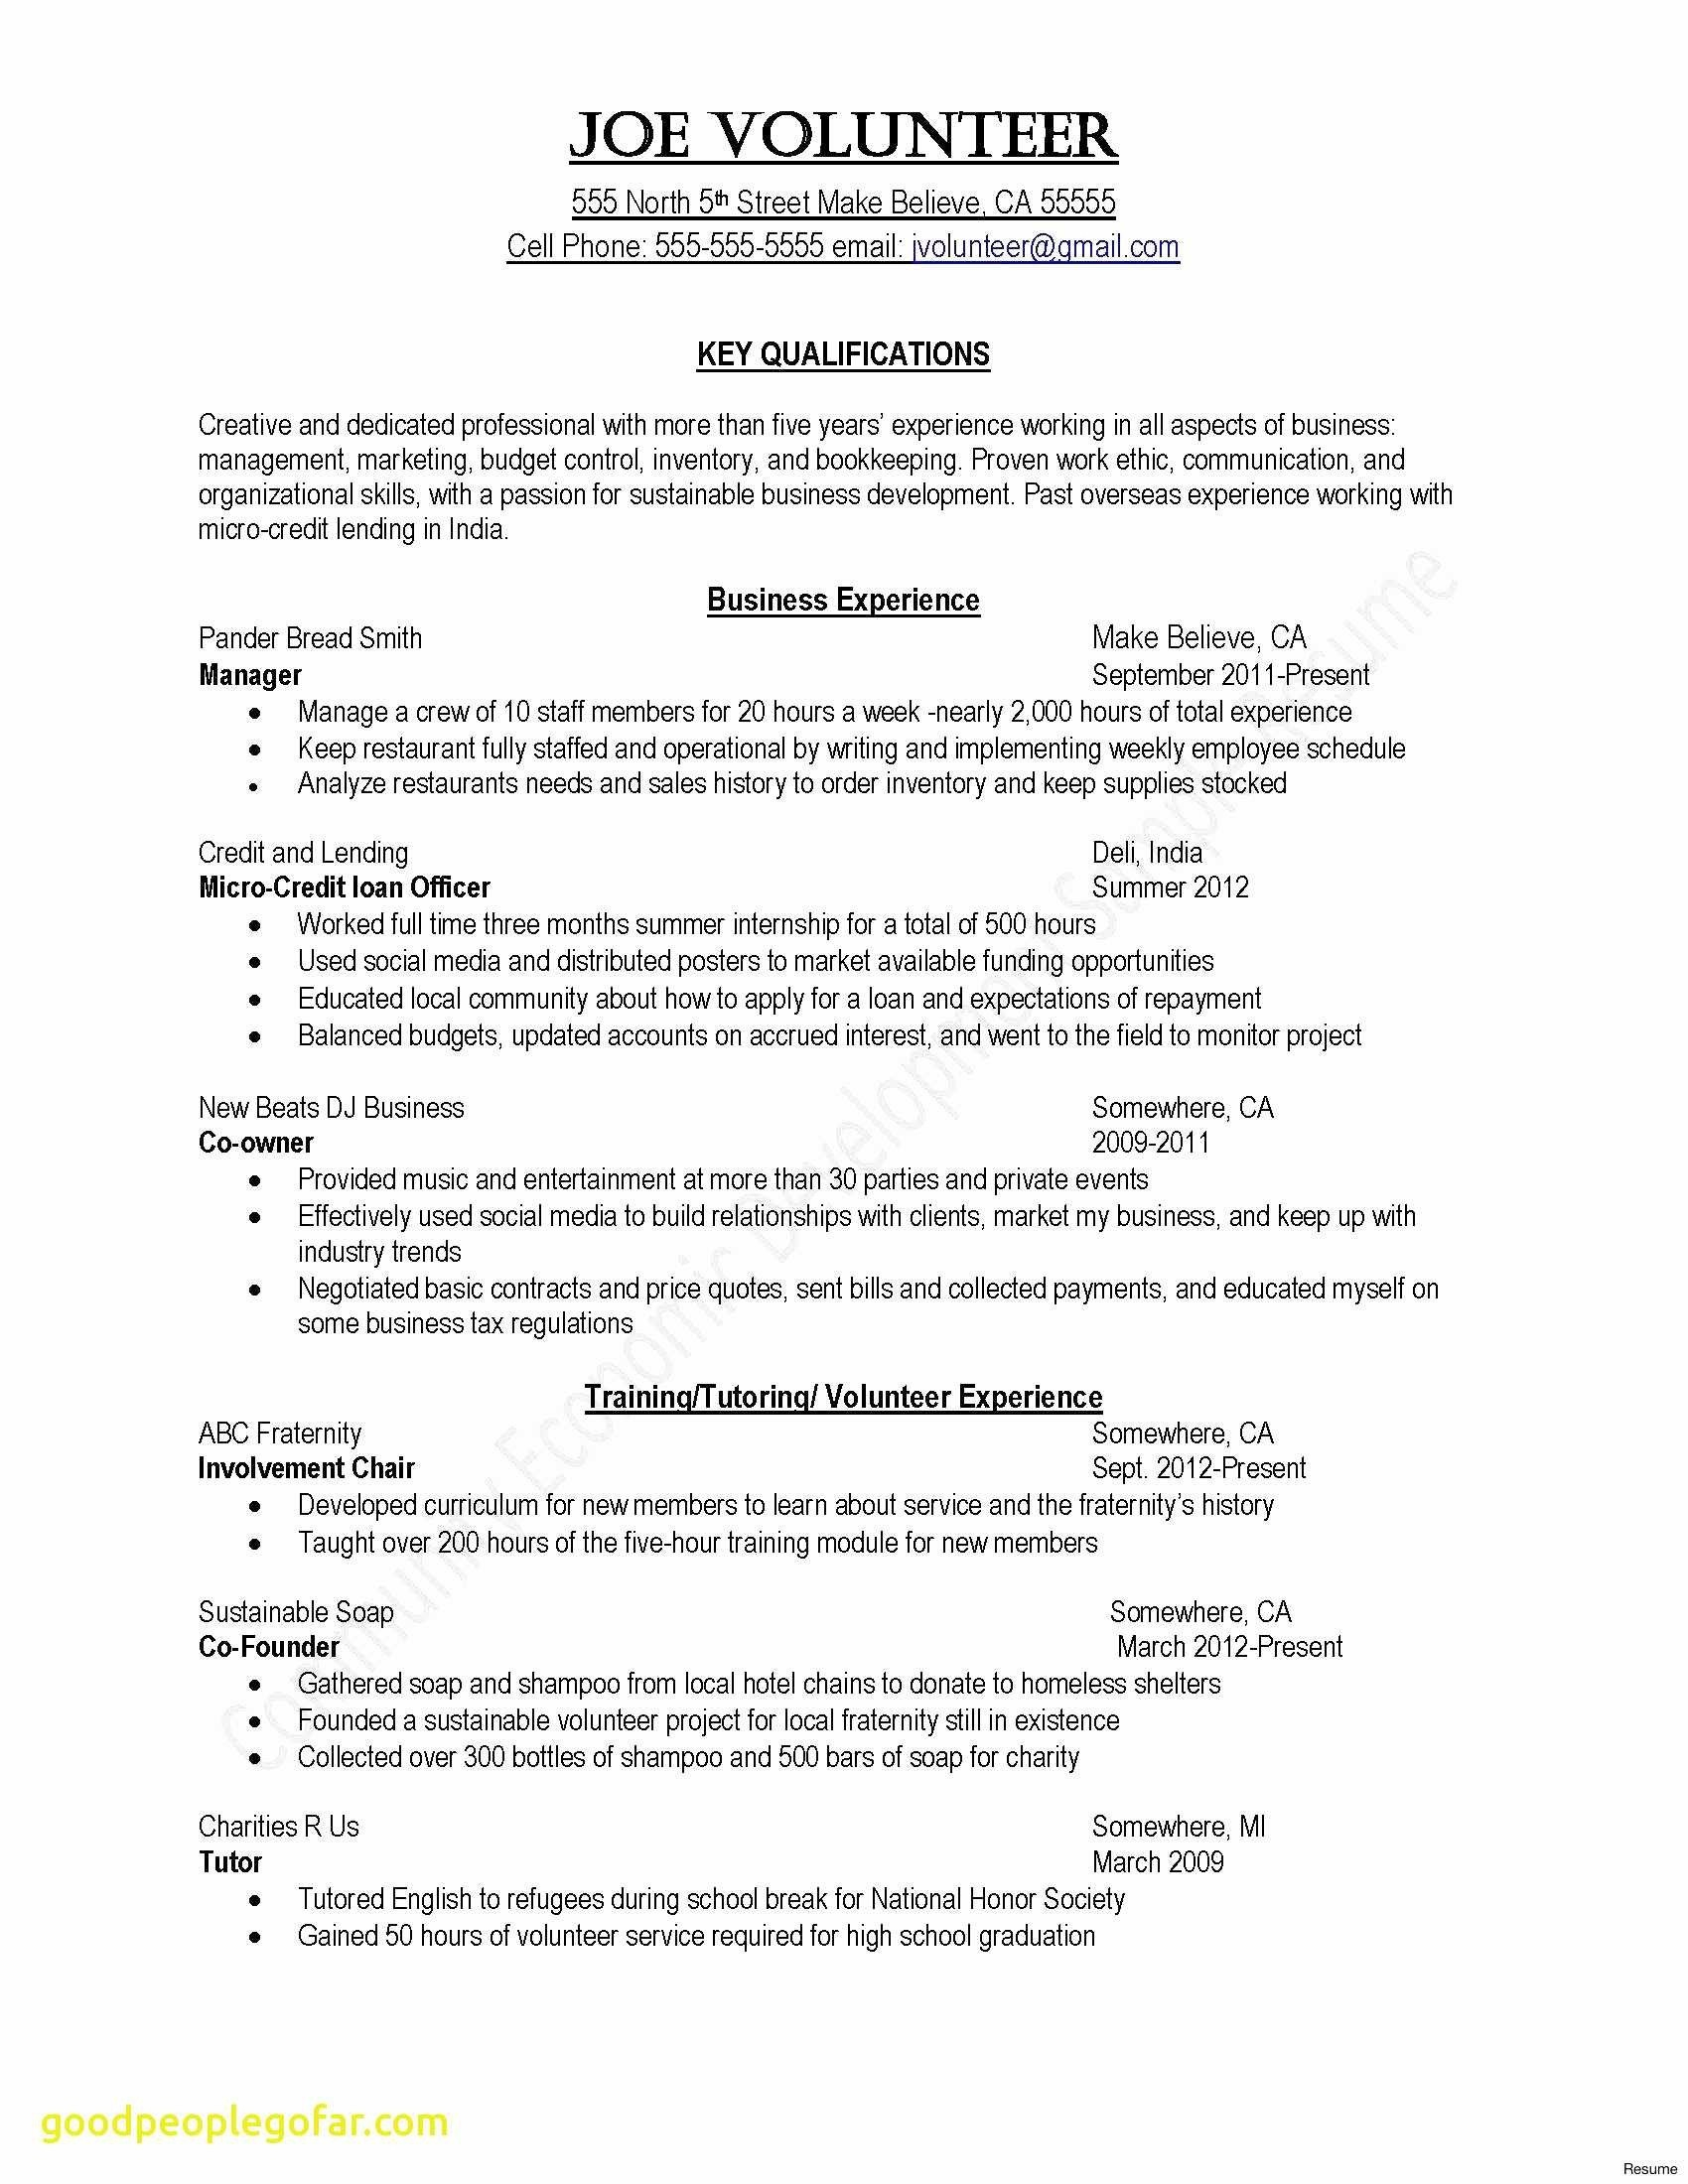 Making A Resume - Build Your Own Resume Beautiful Build Resume for Free Best I Need A